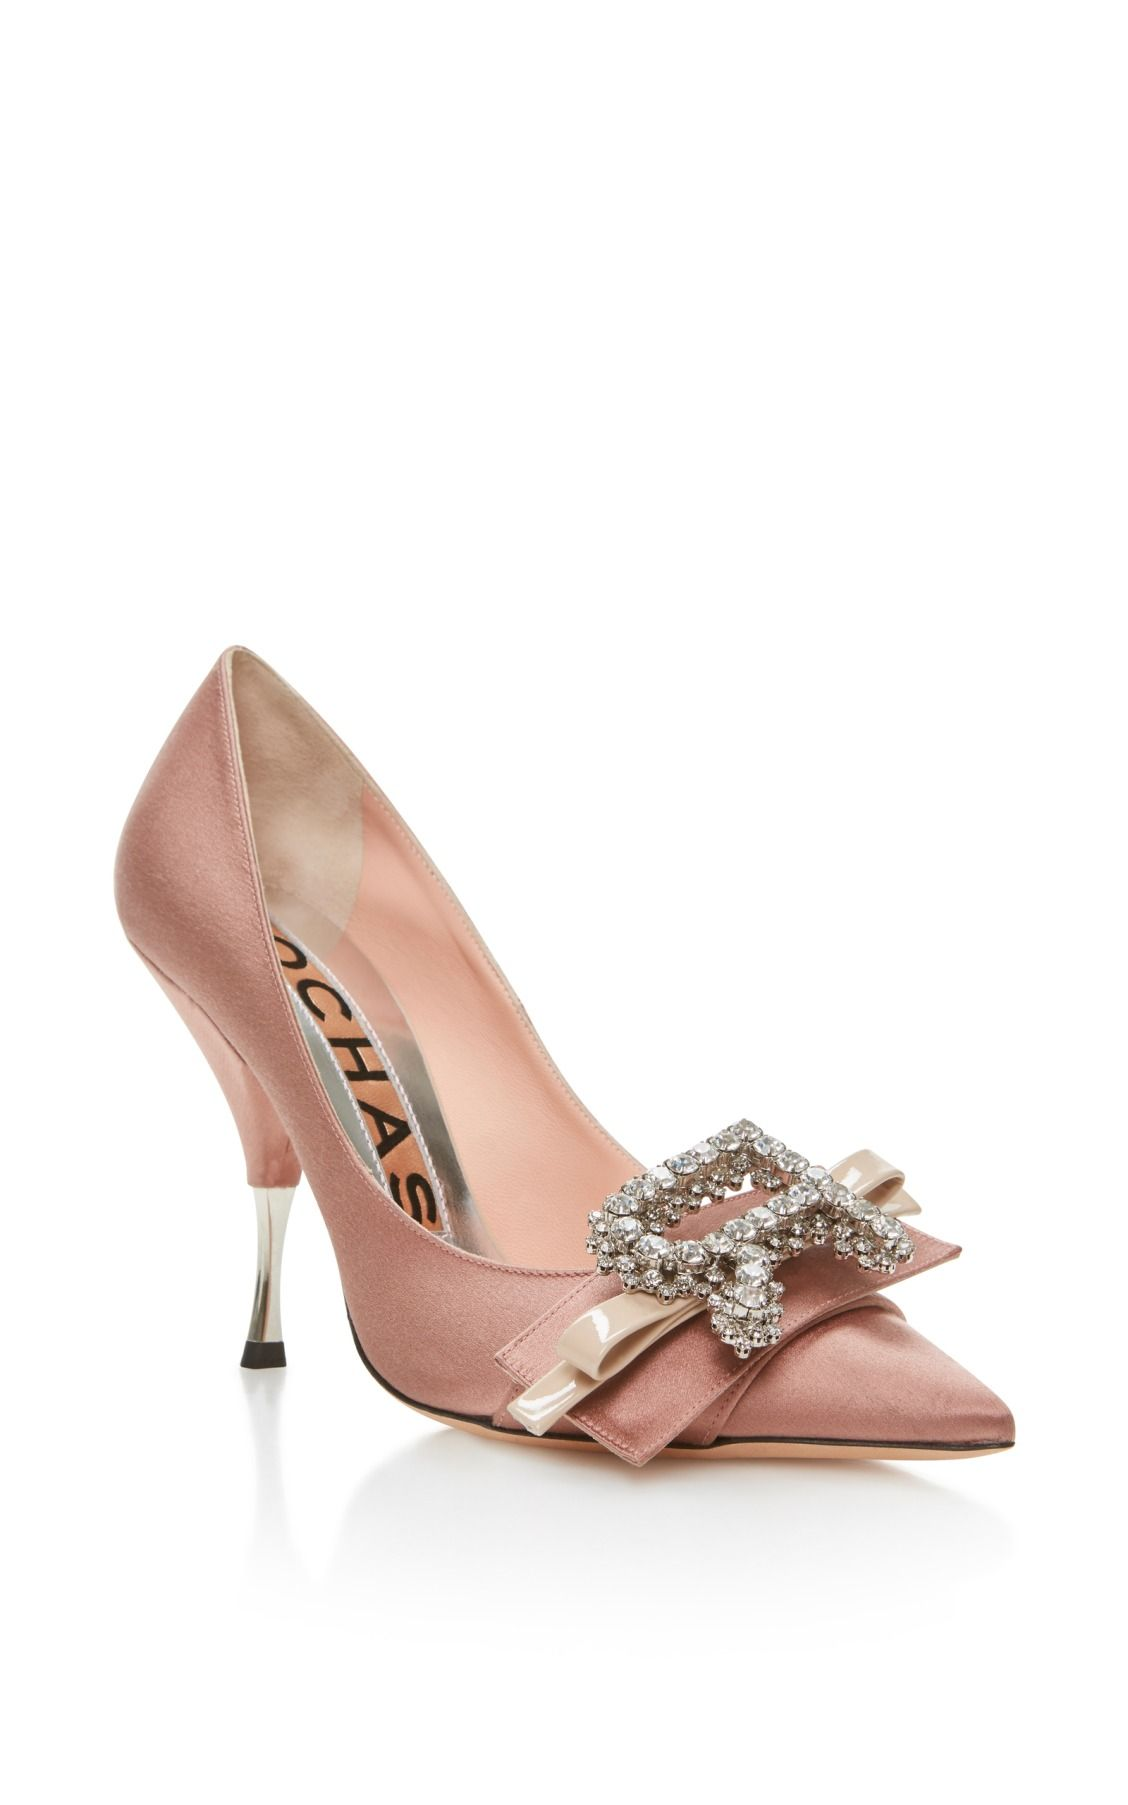 863cfc0d4e2 Dusty Rose Pump with Bow by Rochas | Weddings | Jeweled shoes, Shoes ...